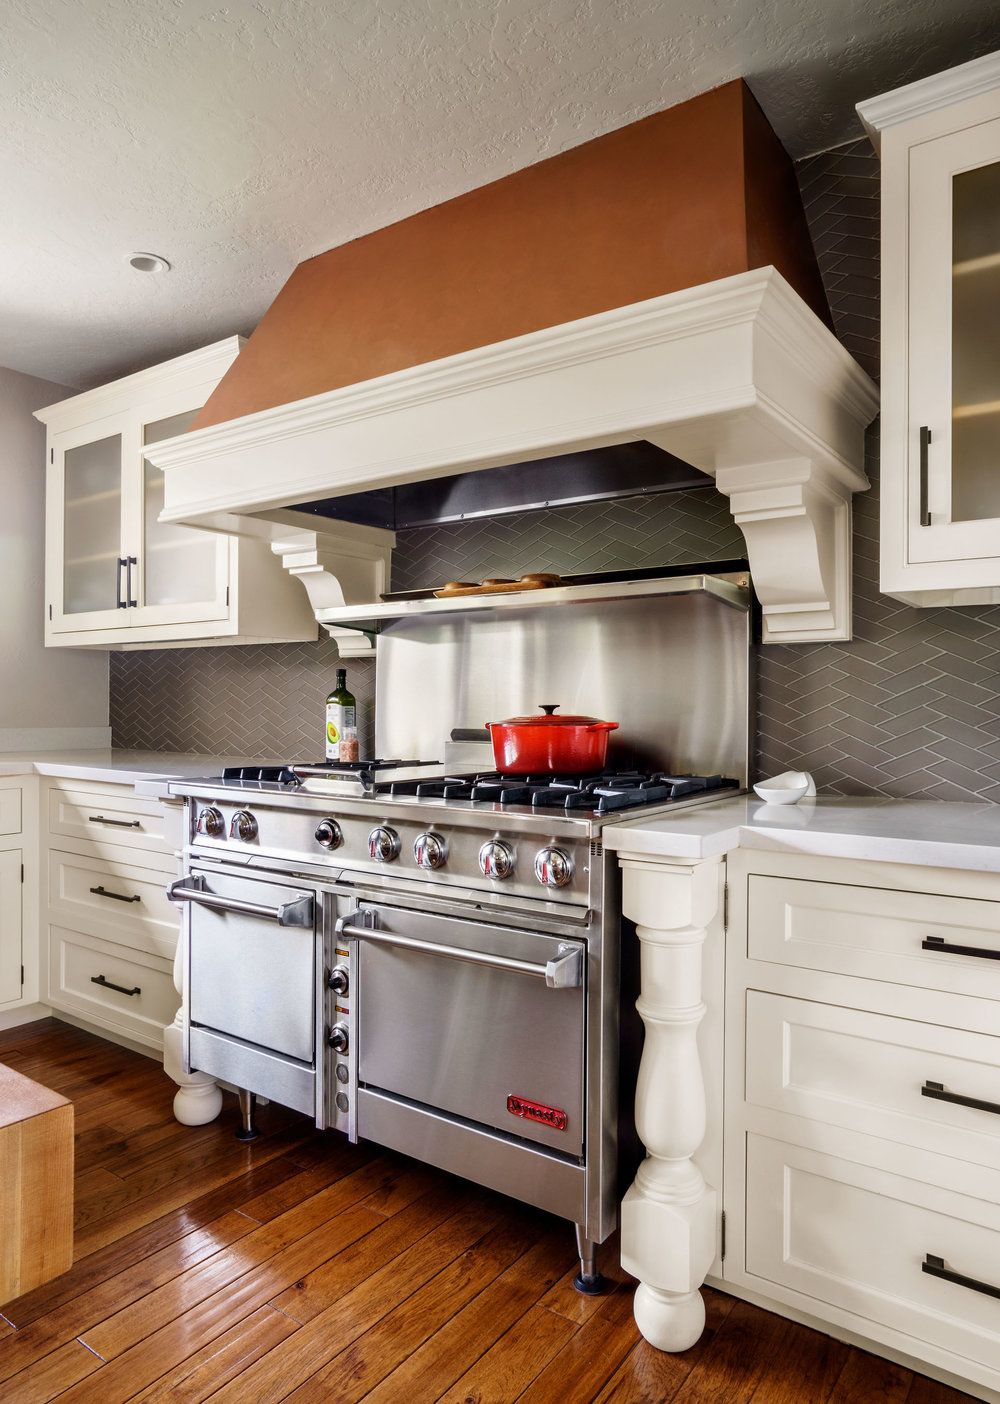 15_Kitchen_Backsplash2_GHID_Jetton_00618.jpg